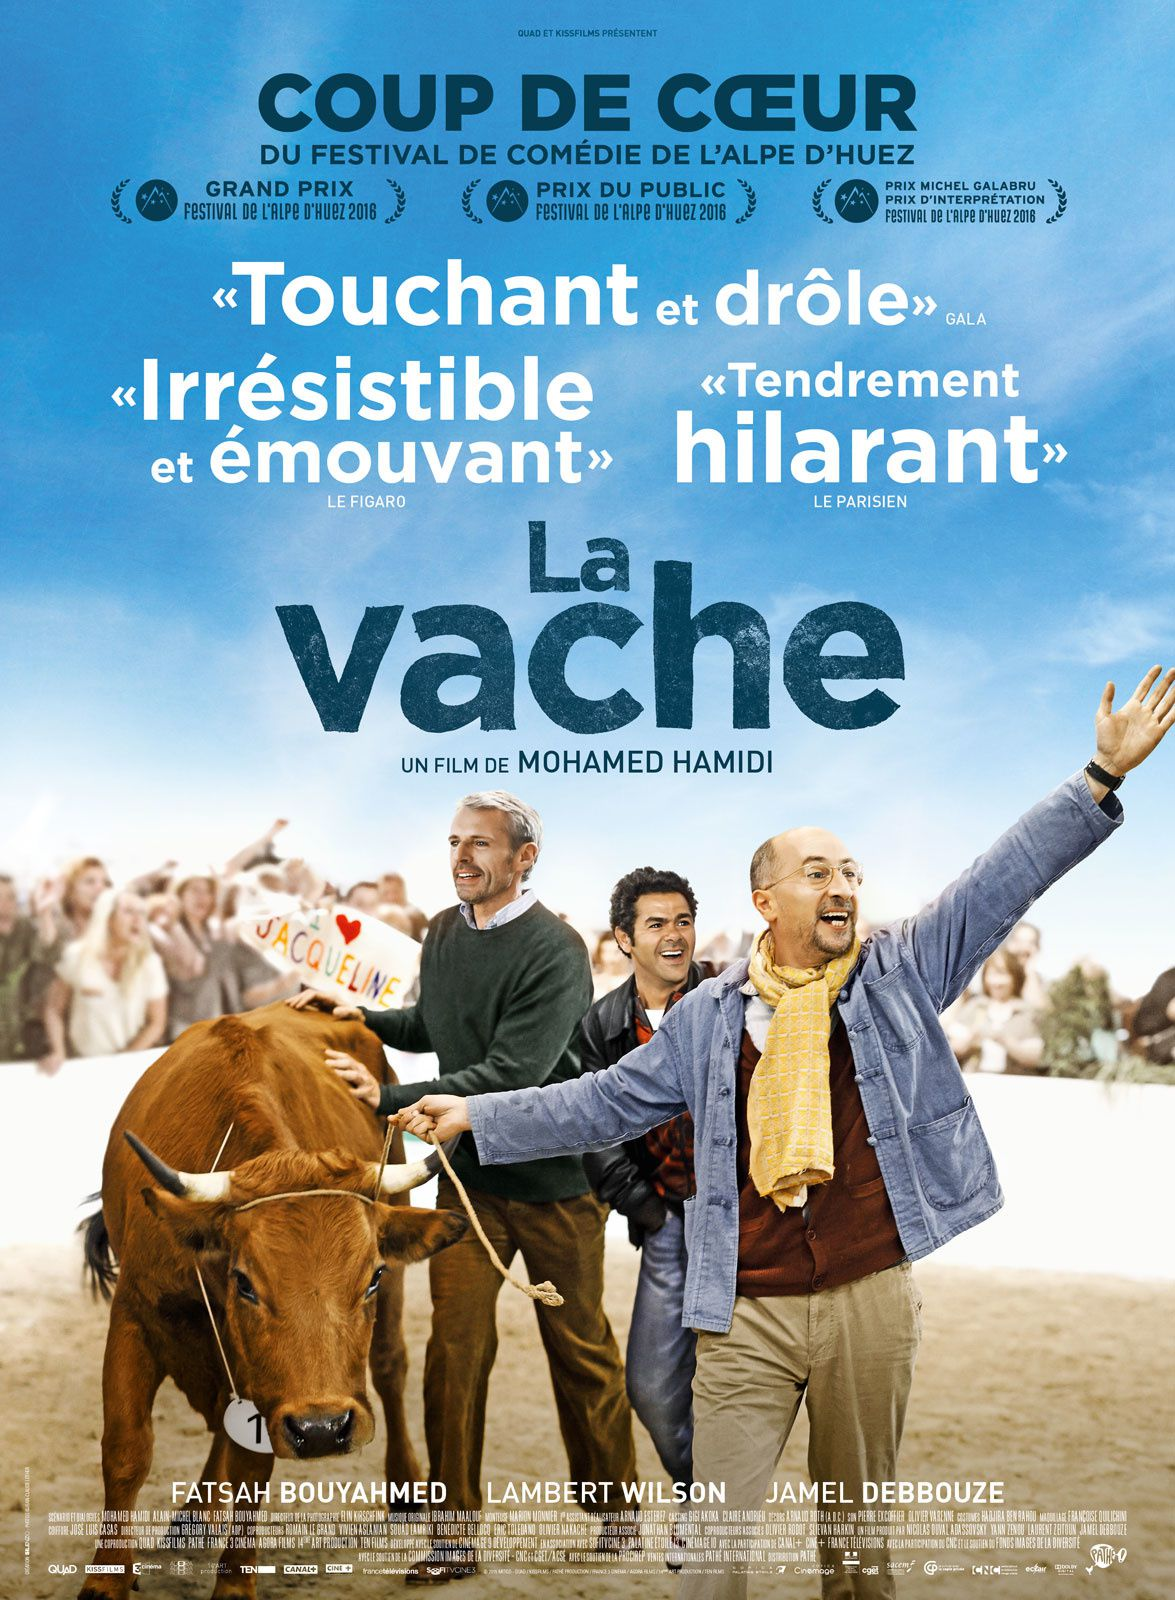 LA VACHE / CINEMA / MOHAMED HAMIDI. 2016